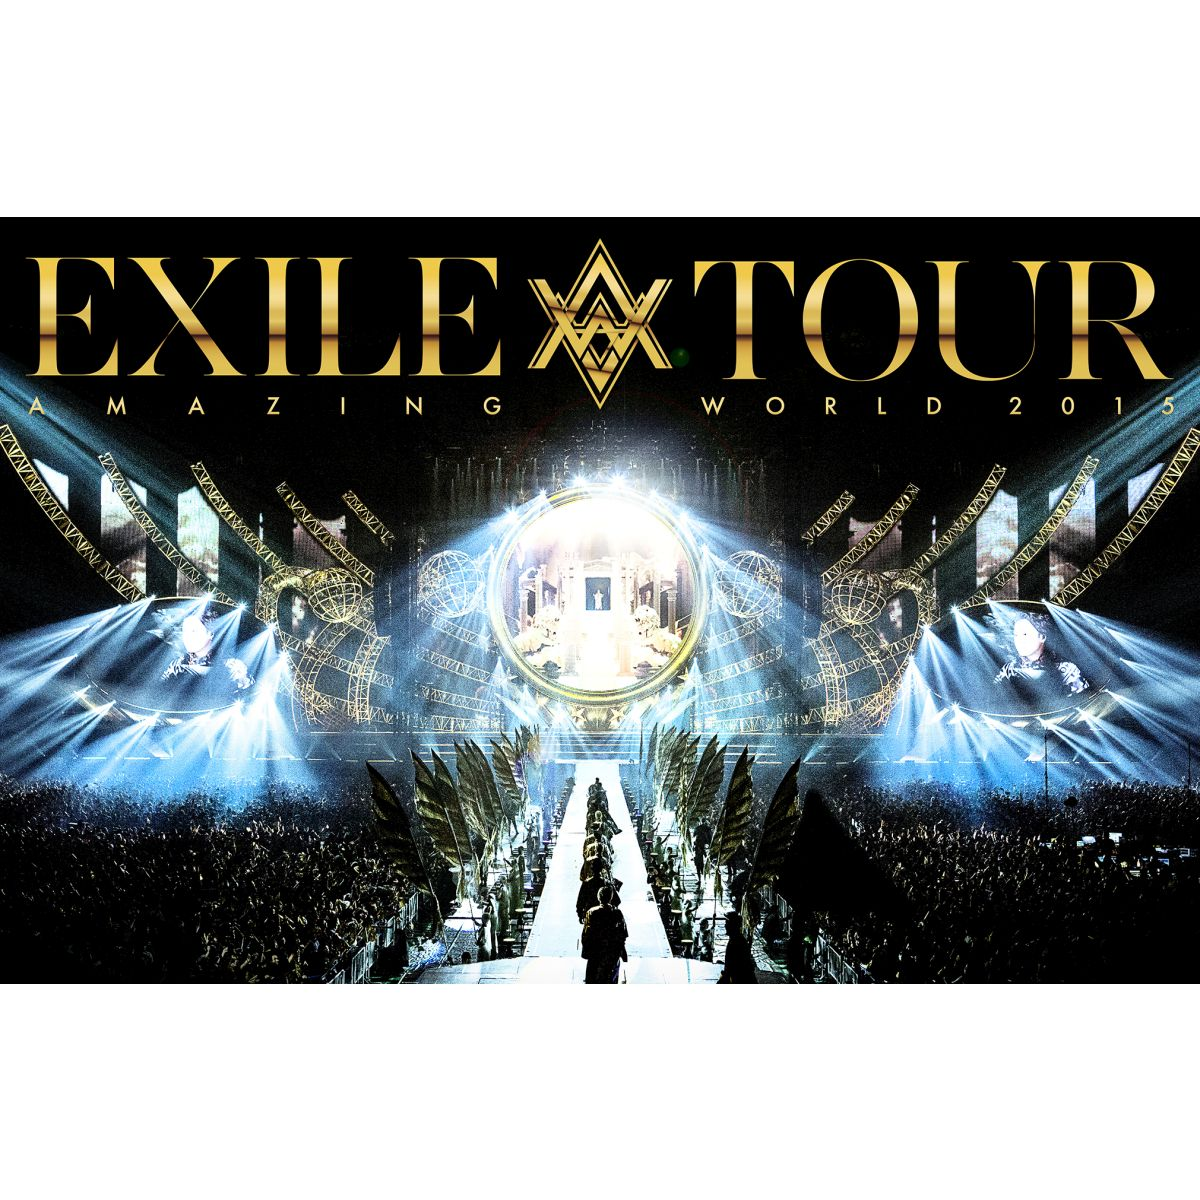 """EXILE LIVE TOUR 2015 """"AMAZING WORLD""""【Blu-ray2枚組+スマプラ】【初回生産限定盤】 [ EXILE ]"""